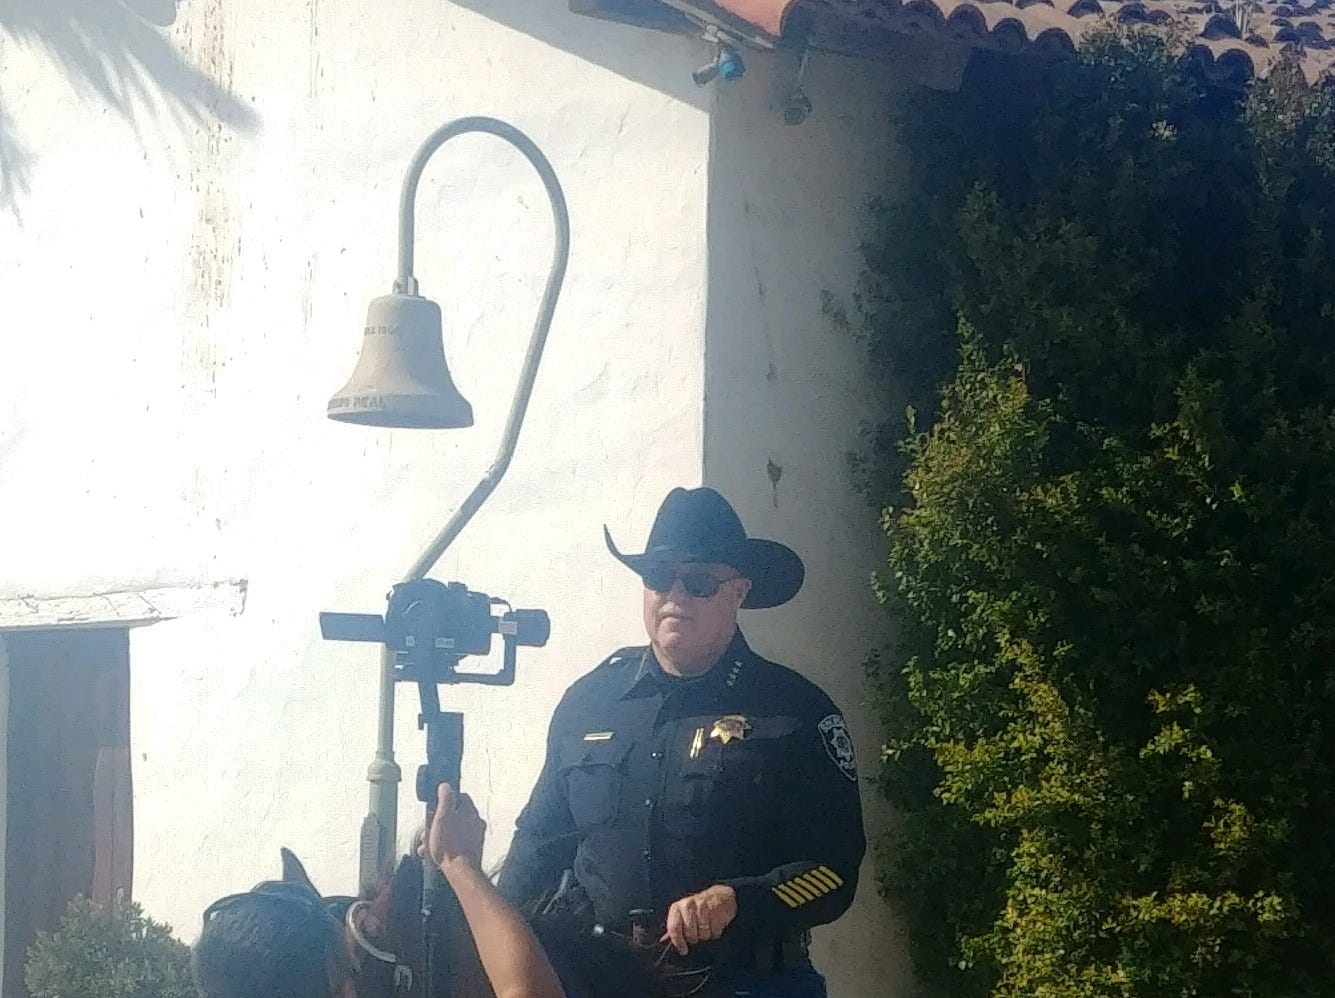 Soledad Police Chief Eric C. Sills rides a horse while filming part of the police department's lip sync challenge video.